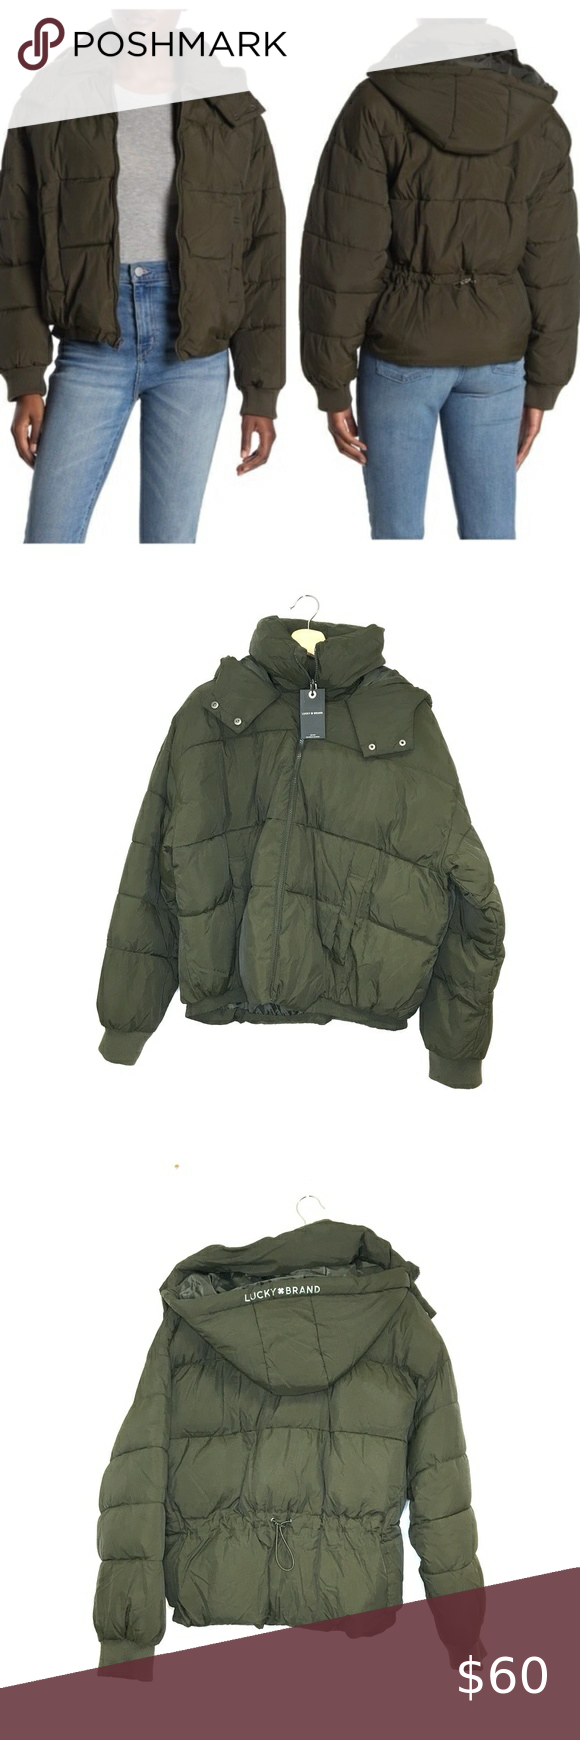 Nwt Lucky Brand Army Green Missy Puffer Jacket Army Green Lucky Brand Puffer Jackets [ 1740 x 580 Pixel ]